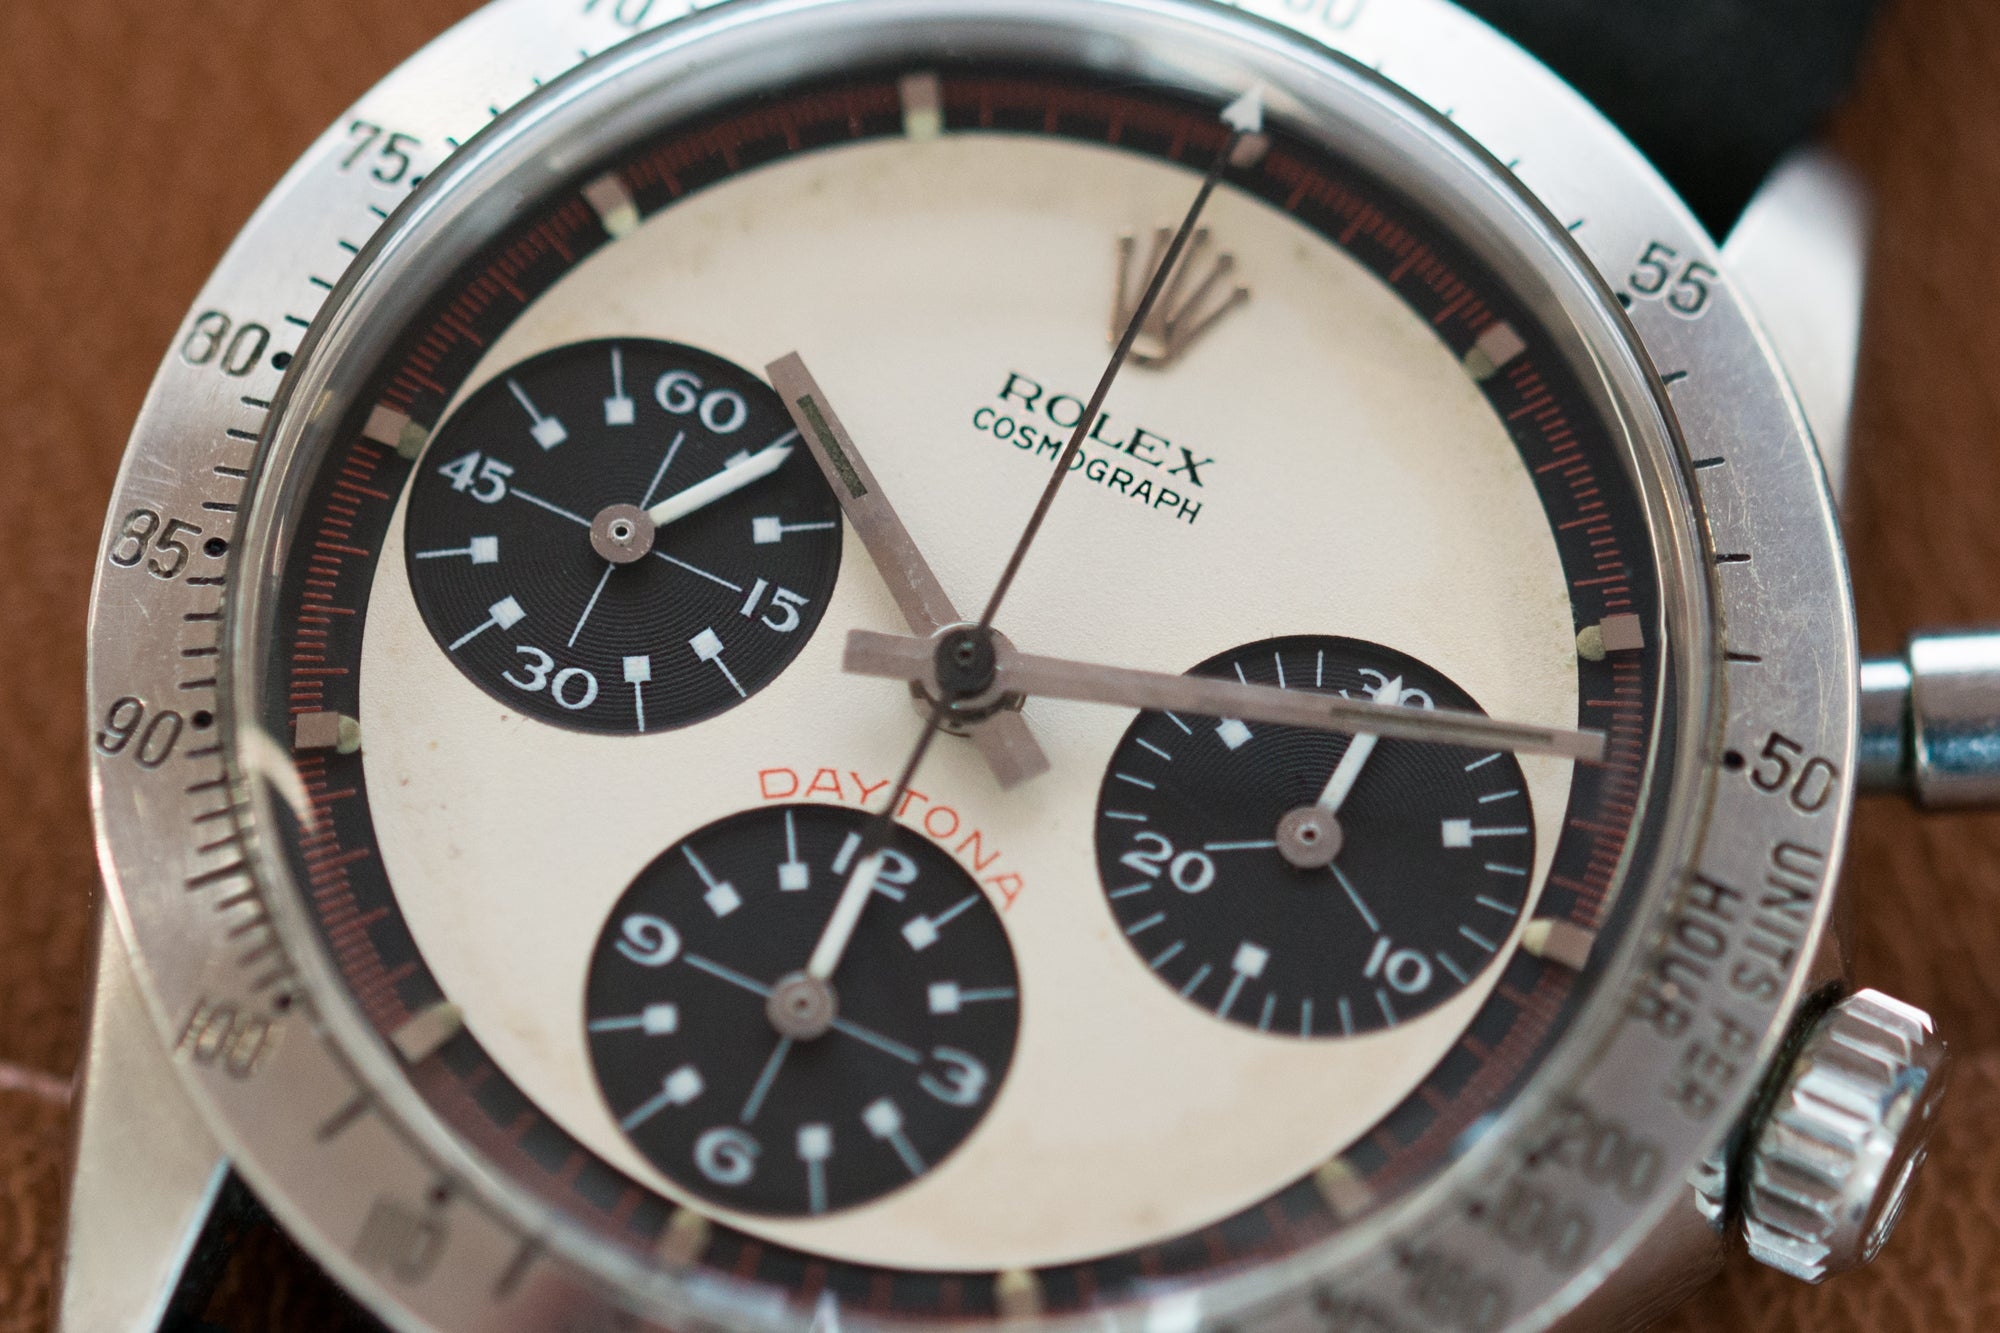 photo There's a 1965 Rolex Paul Newman Daytona For Sale on eBay Right Now (Yours for a Cool 325,000)